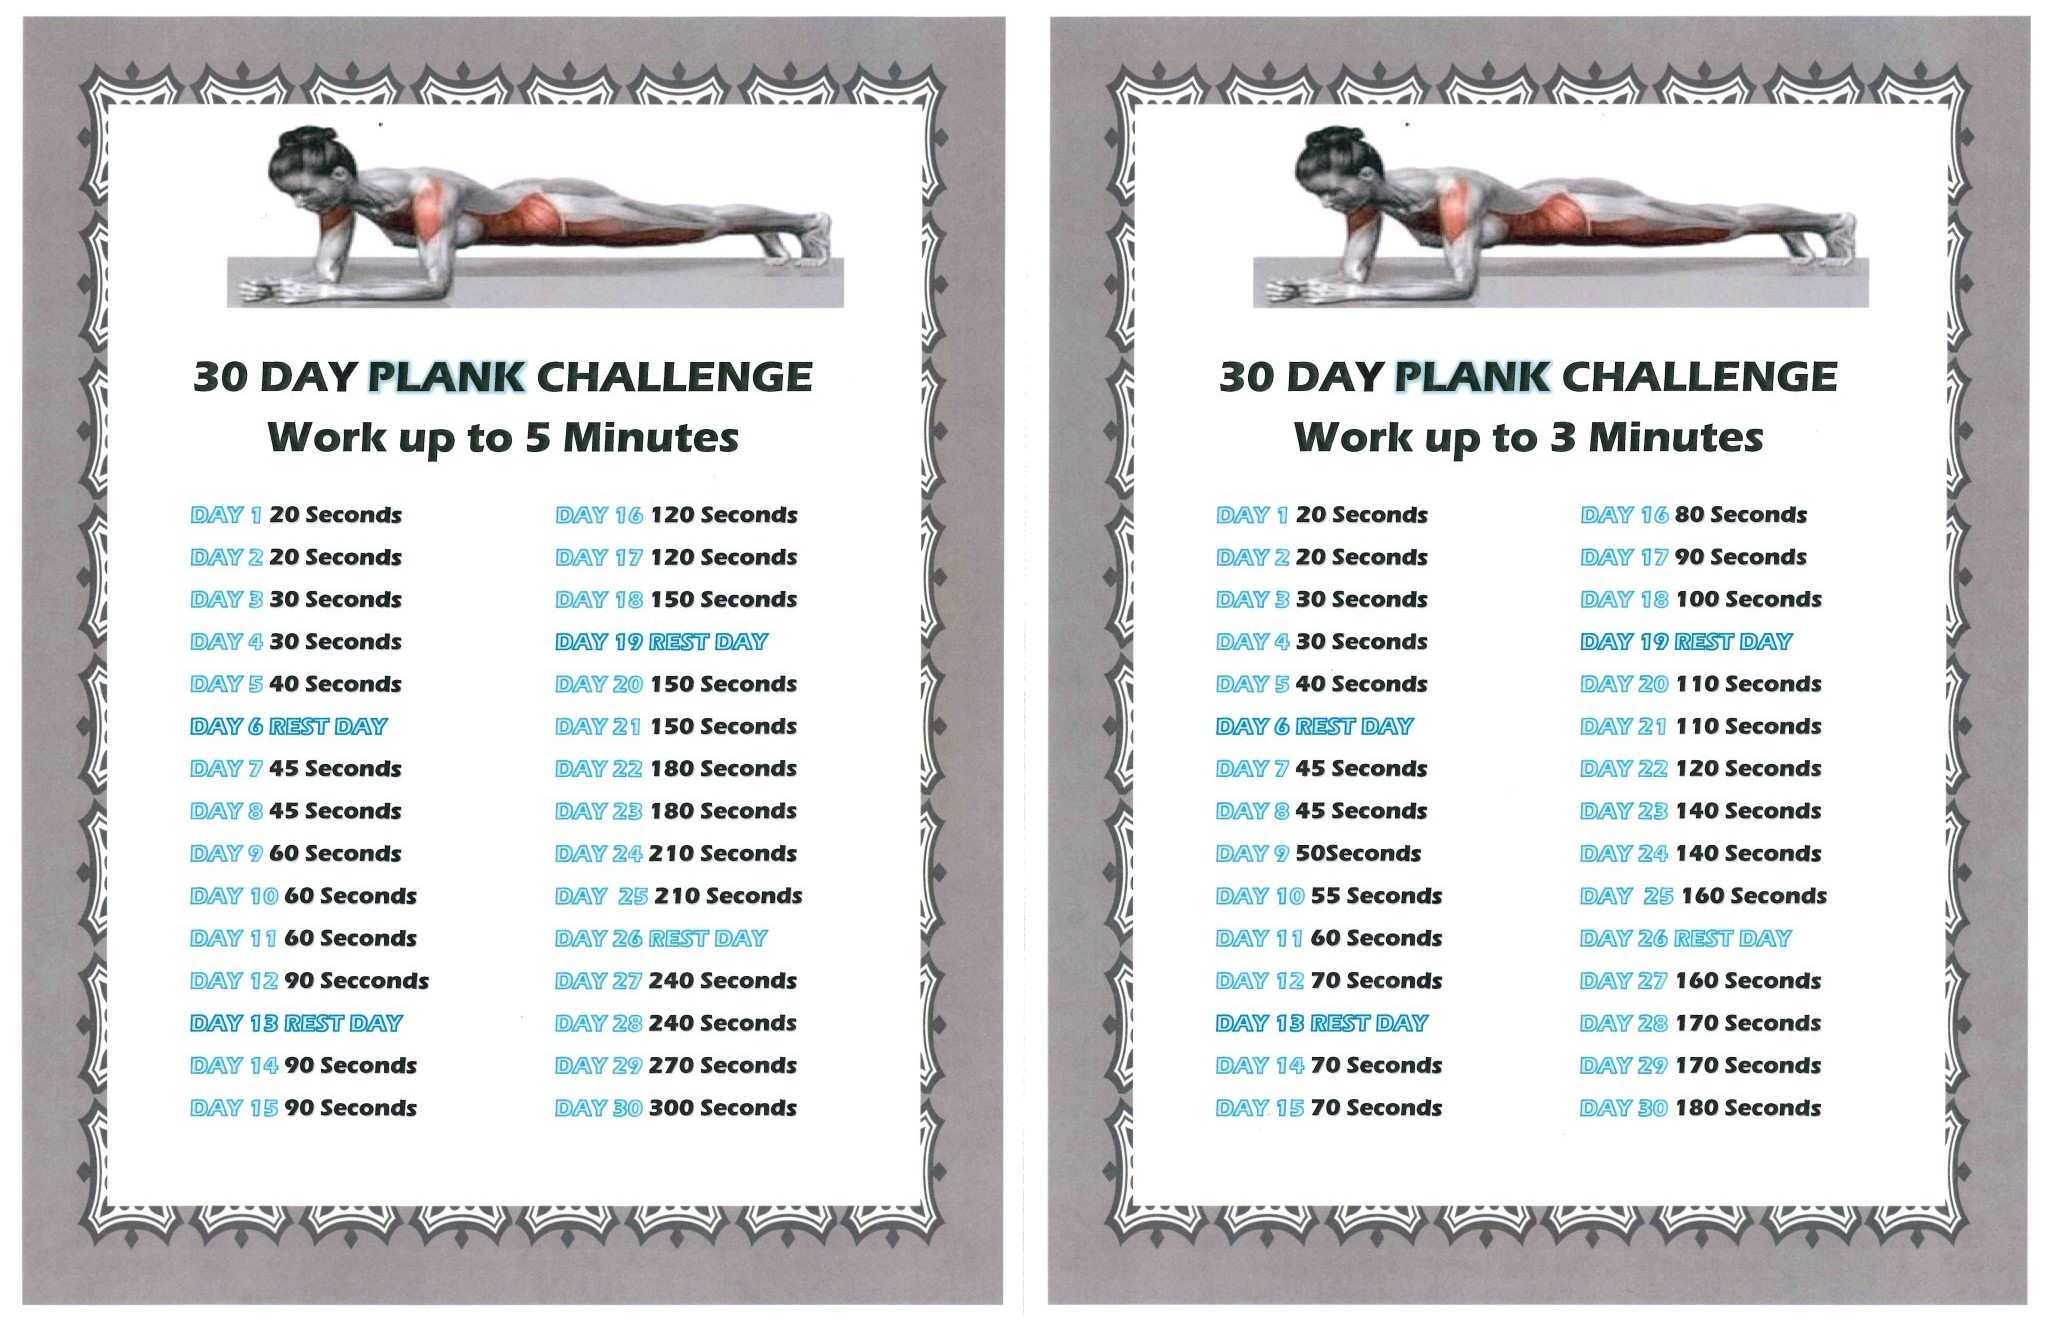 30 Day Plank Challenge 2015 International Triathlon Club Paris